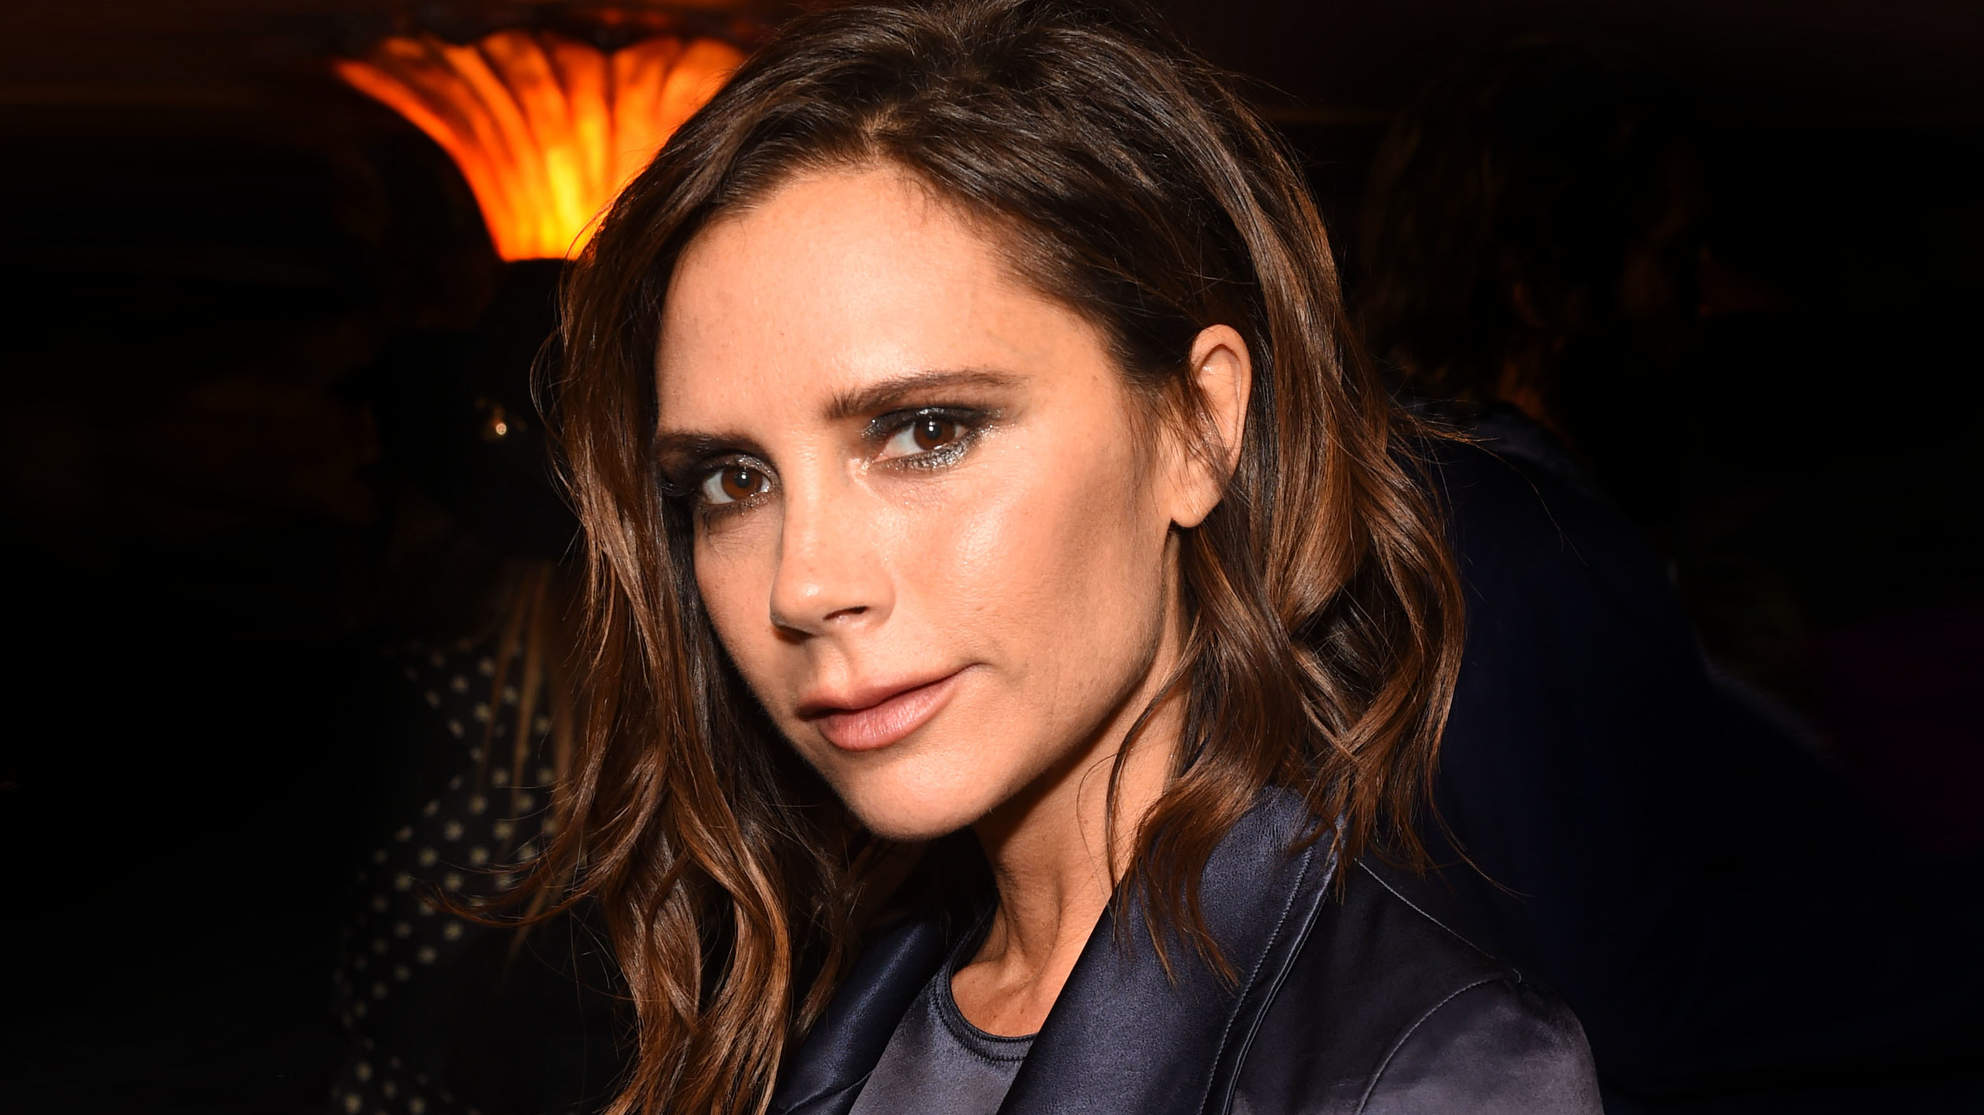 Victoria Beckham Admits She Regrets Breast Implants—And She's Not Alone